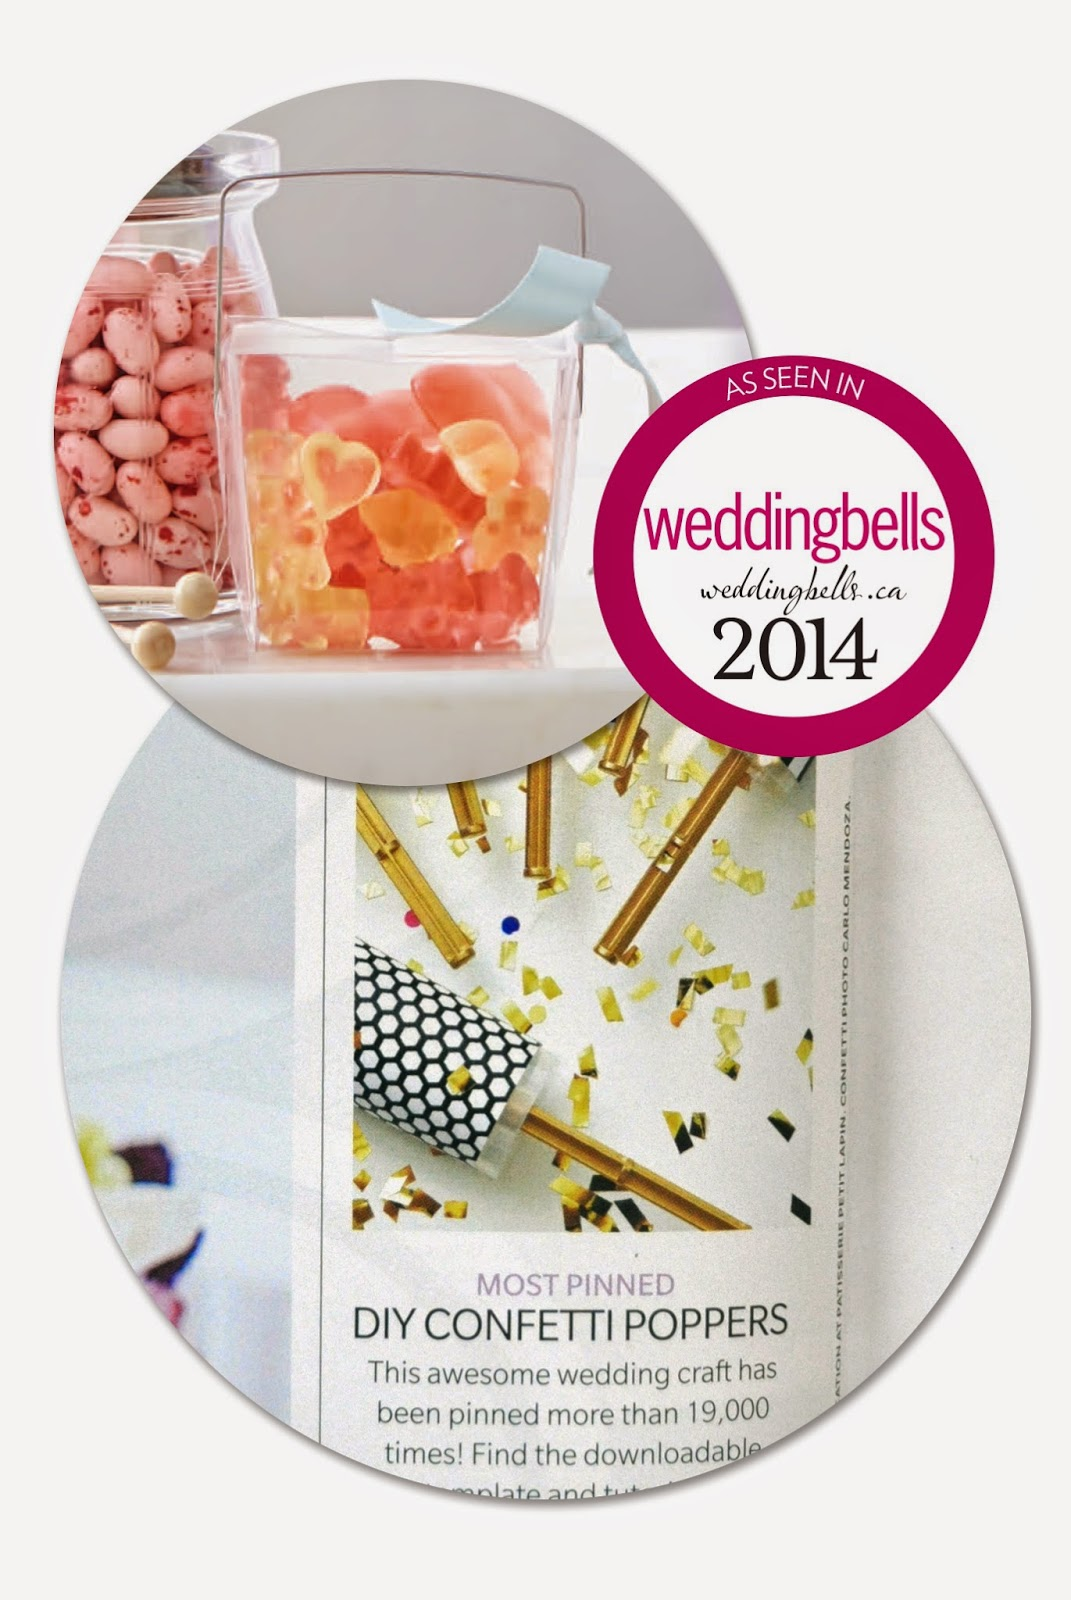 diy wedding inspiration as seen in Weddingbells magazine